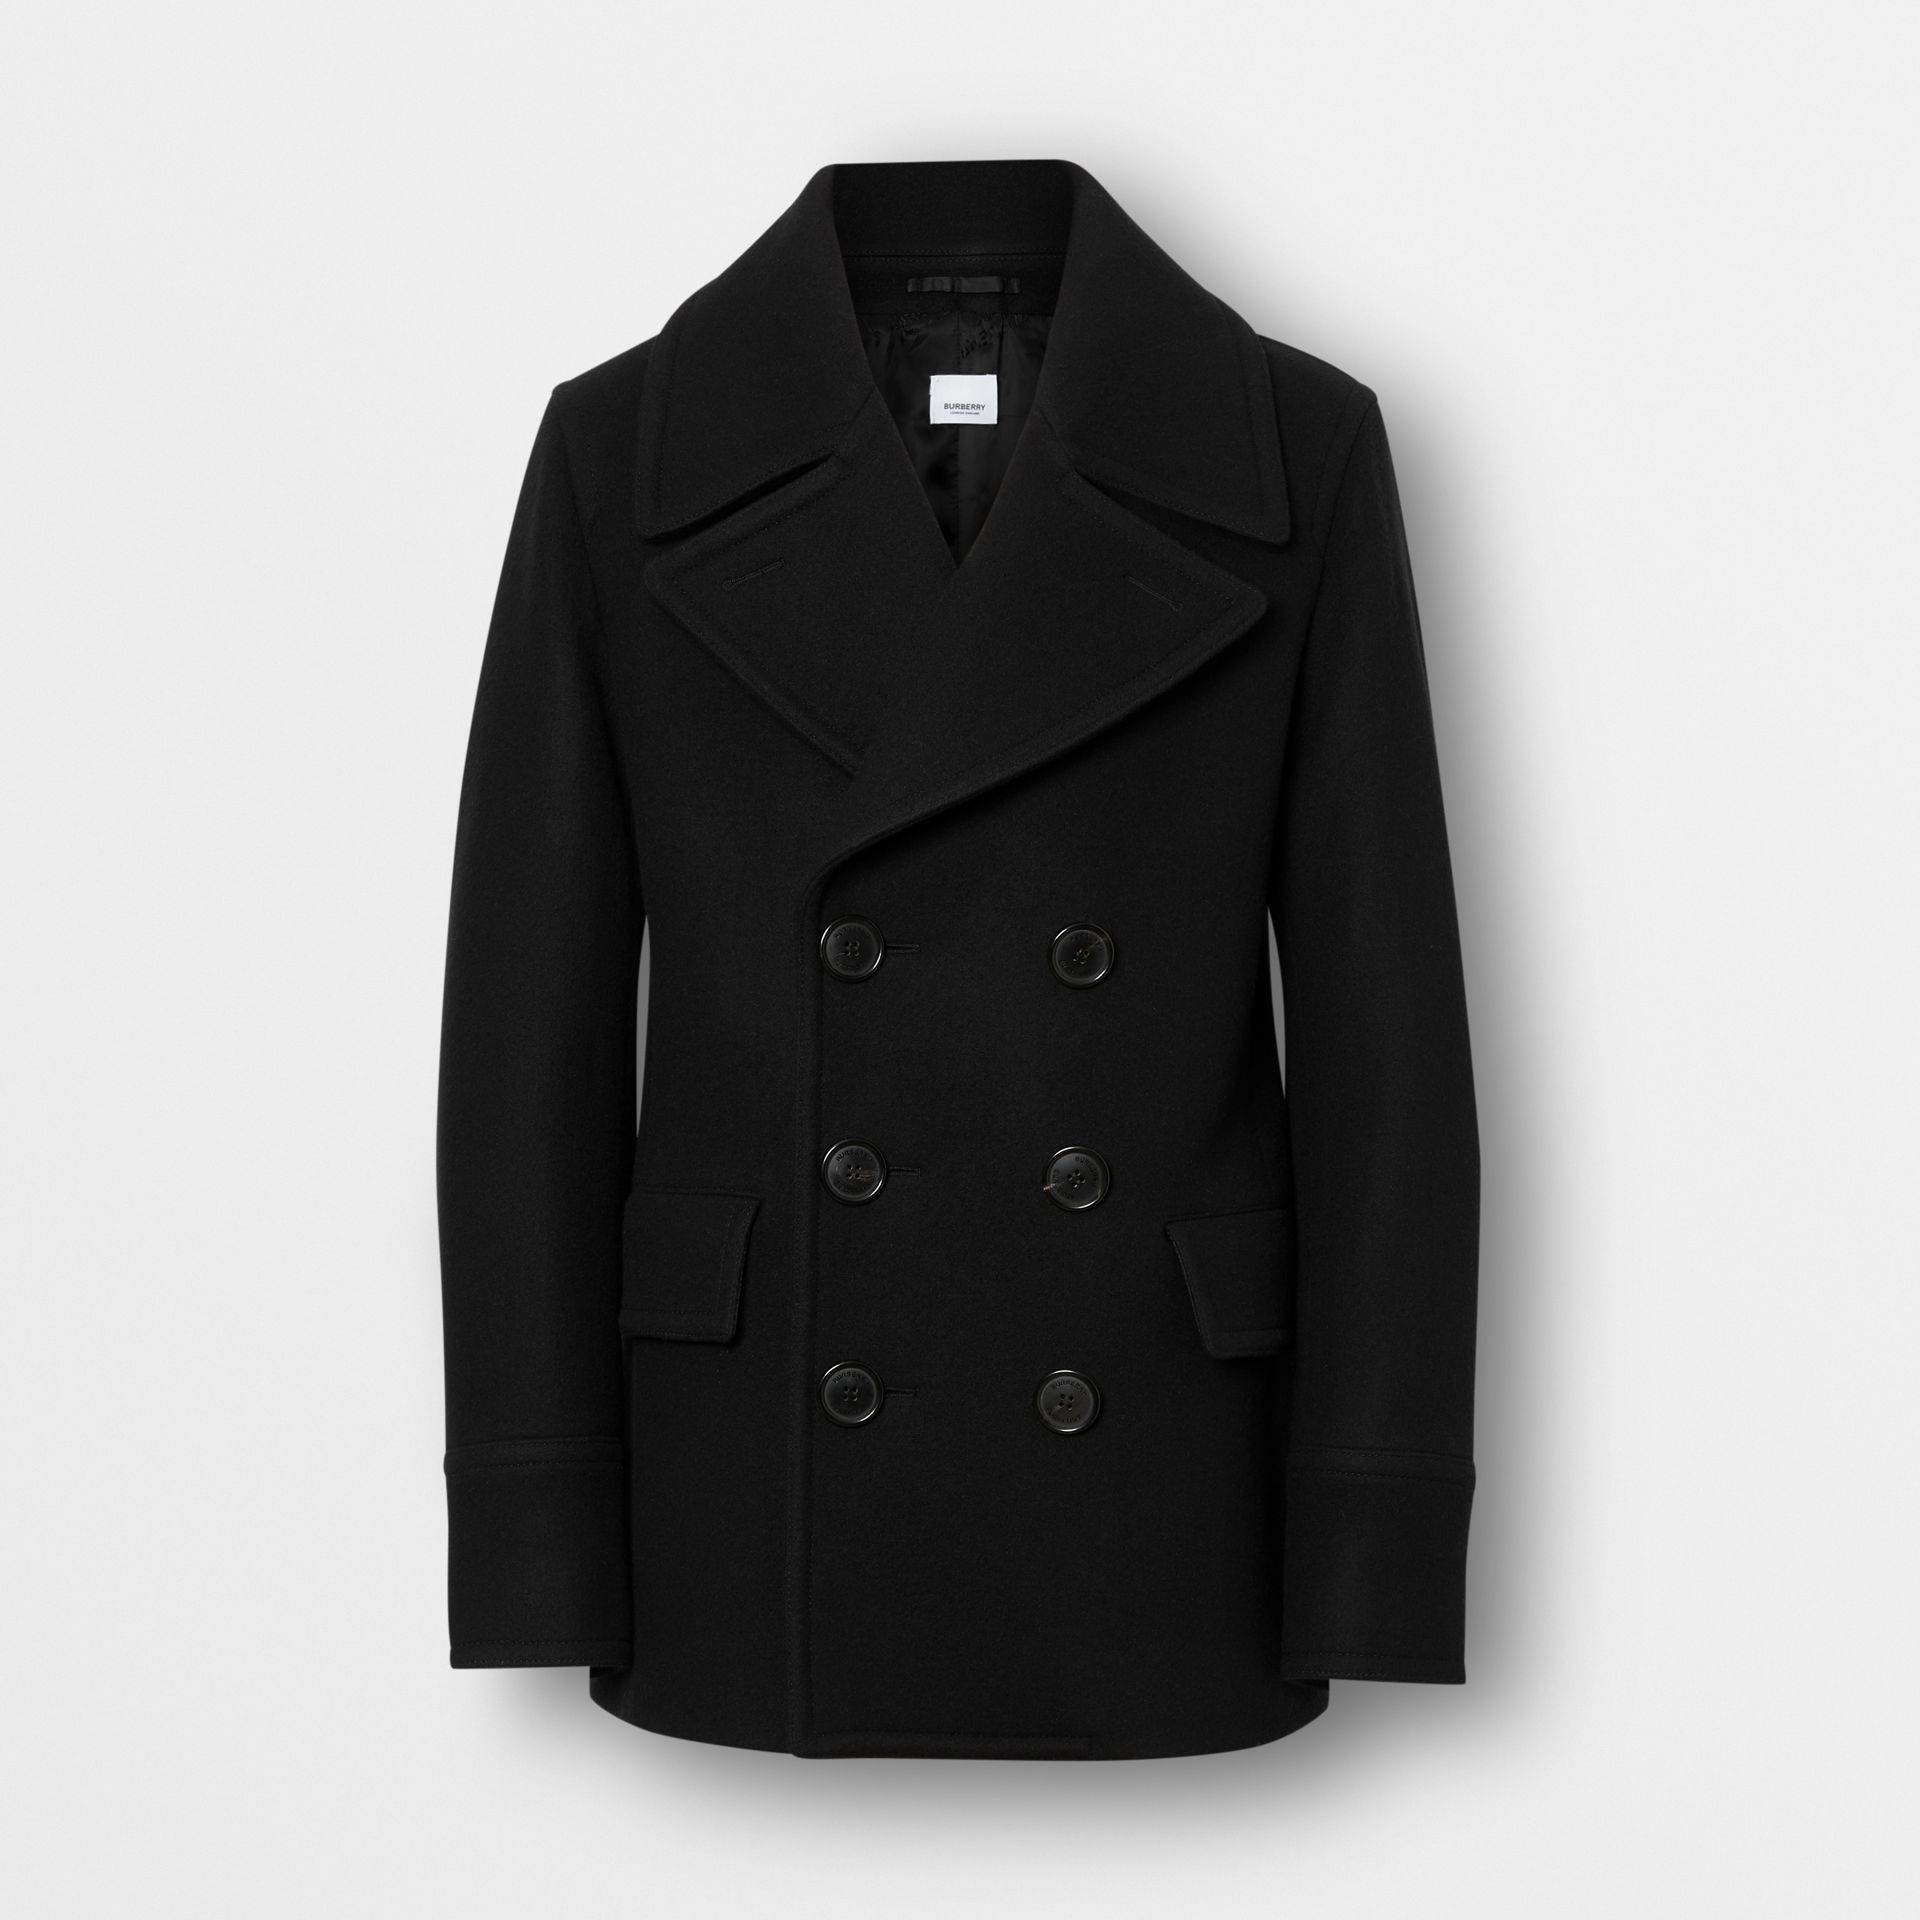 Wool Blend Pea Coat in Black - Men | Burberry - gallery image 3